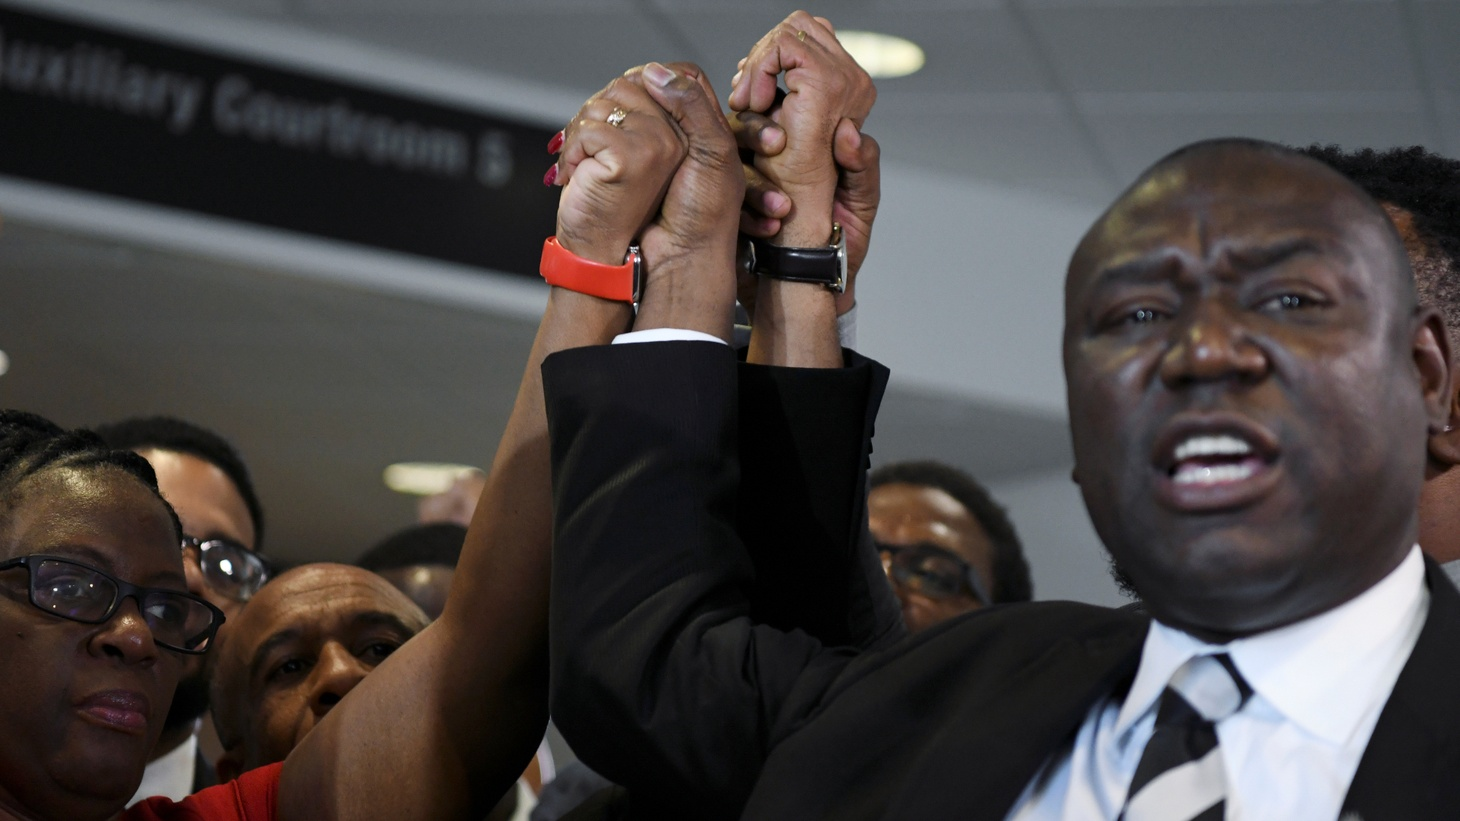 Botham Jean's mother Allison Jean and his father Bertram Jean raise their hand with their family attorneys, Daryl Washington, Benjamin Crump and Lee Merrit, after the conviction charge of murder was delivered for the trial of former Dallas police officer Amber Guyger, in Dallas, Texas, U.S. October 1, 2019.